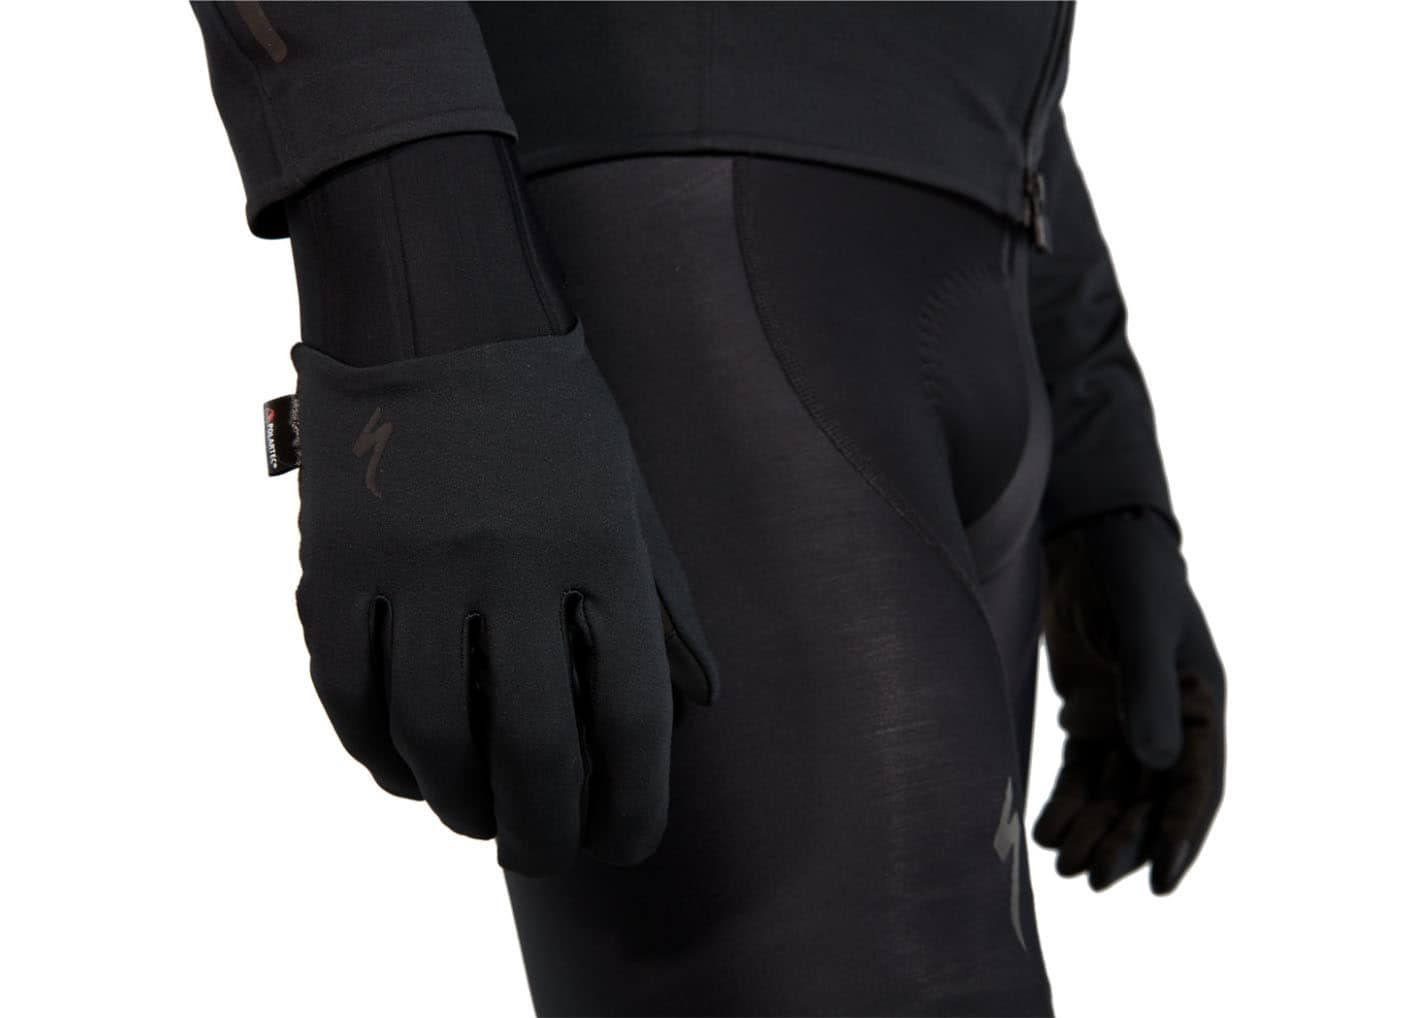 Specialized Handske, Prime-Series Thermal Gloves, Svart